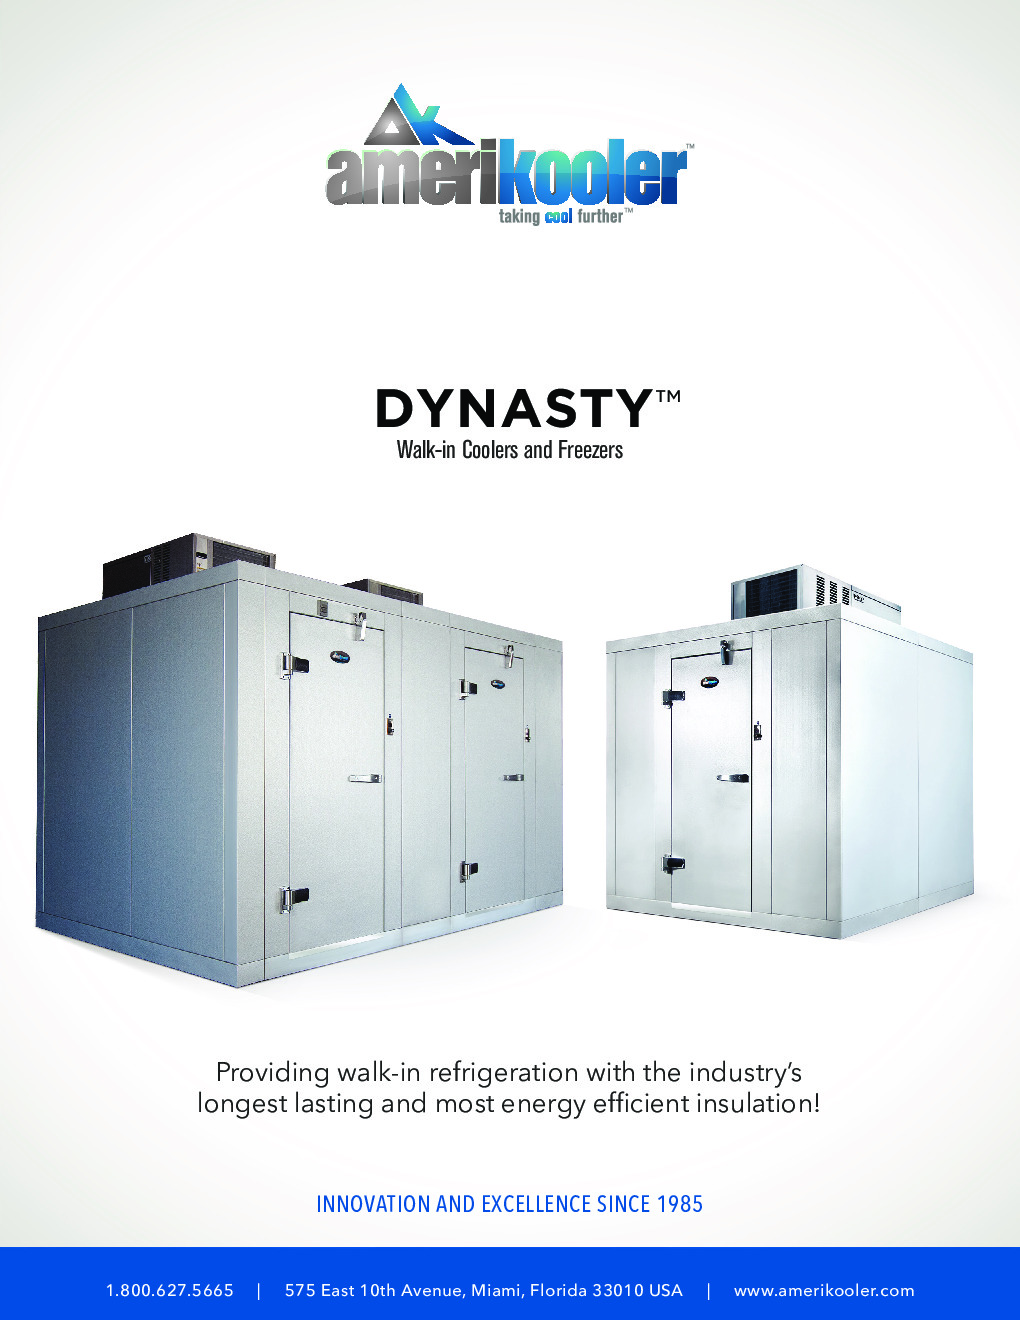 AmeriKooler DW081577F-7/8-SC 8' X 15' Walk-In Cooler, 8' L Cooler with Floor and 7' L Freezer, Self Contained